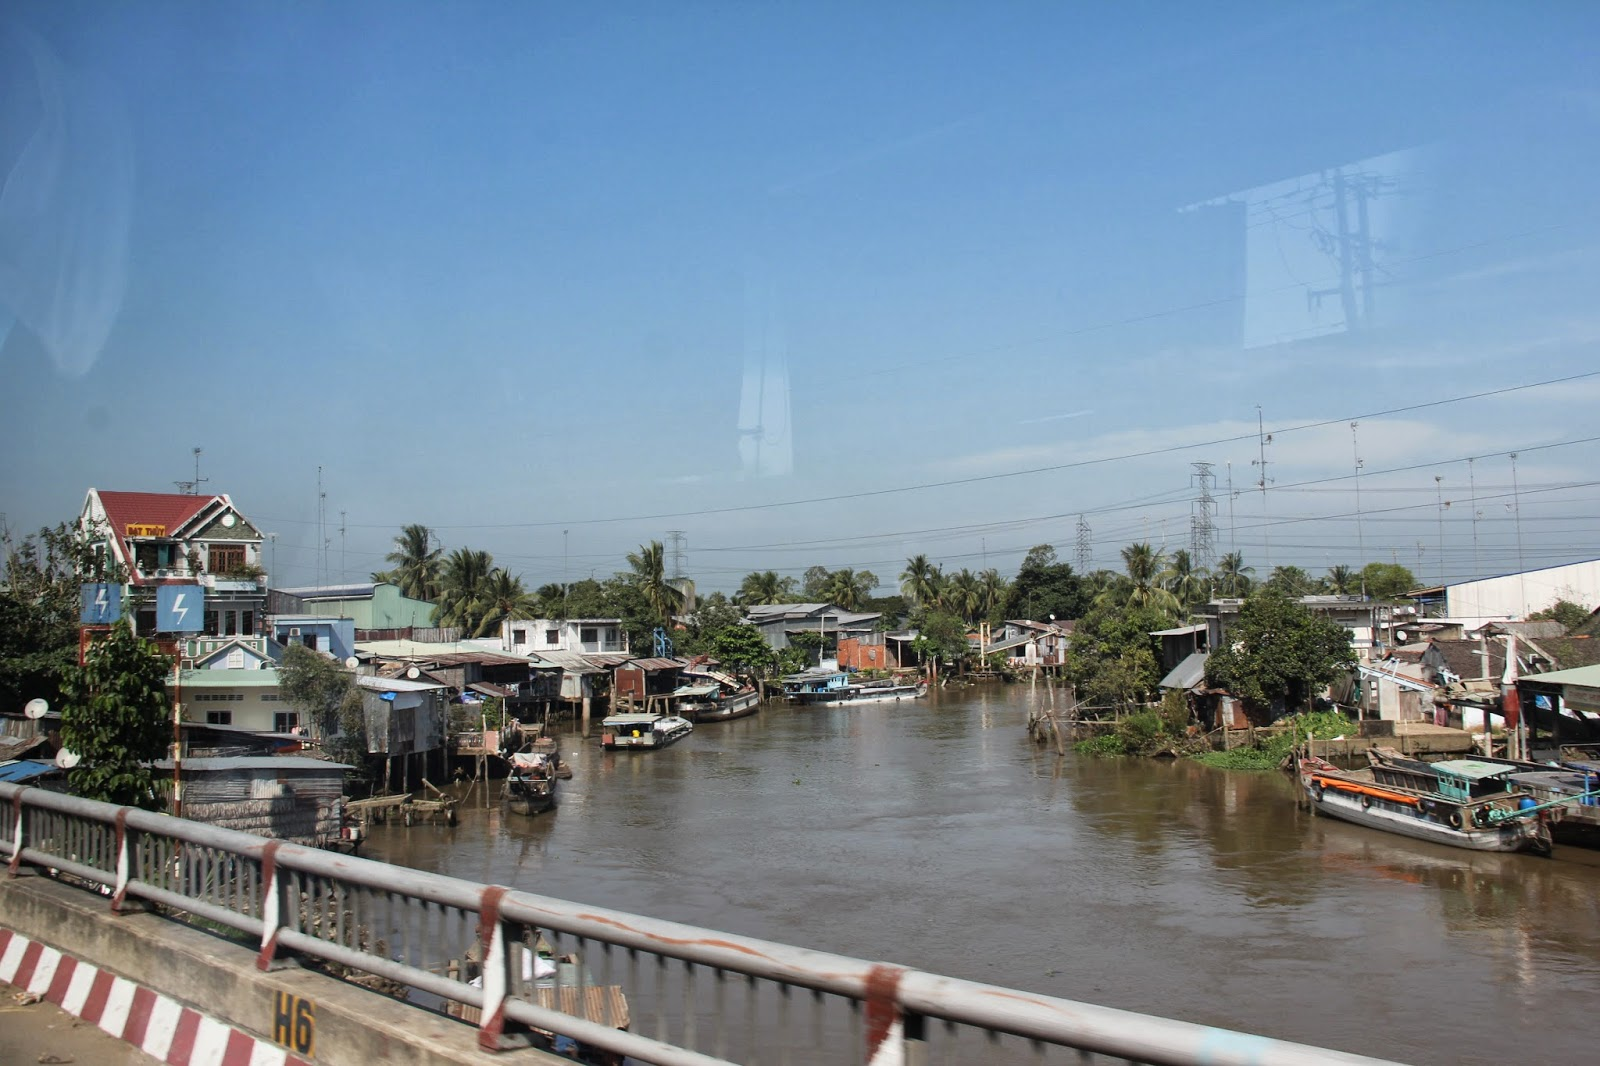 View from a bridge over one of the branches of the Mekong River.